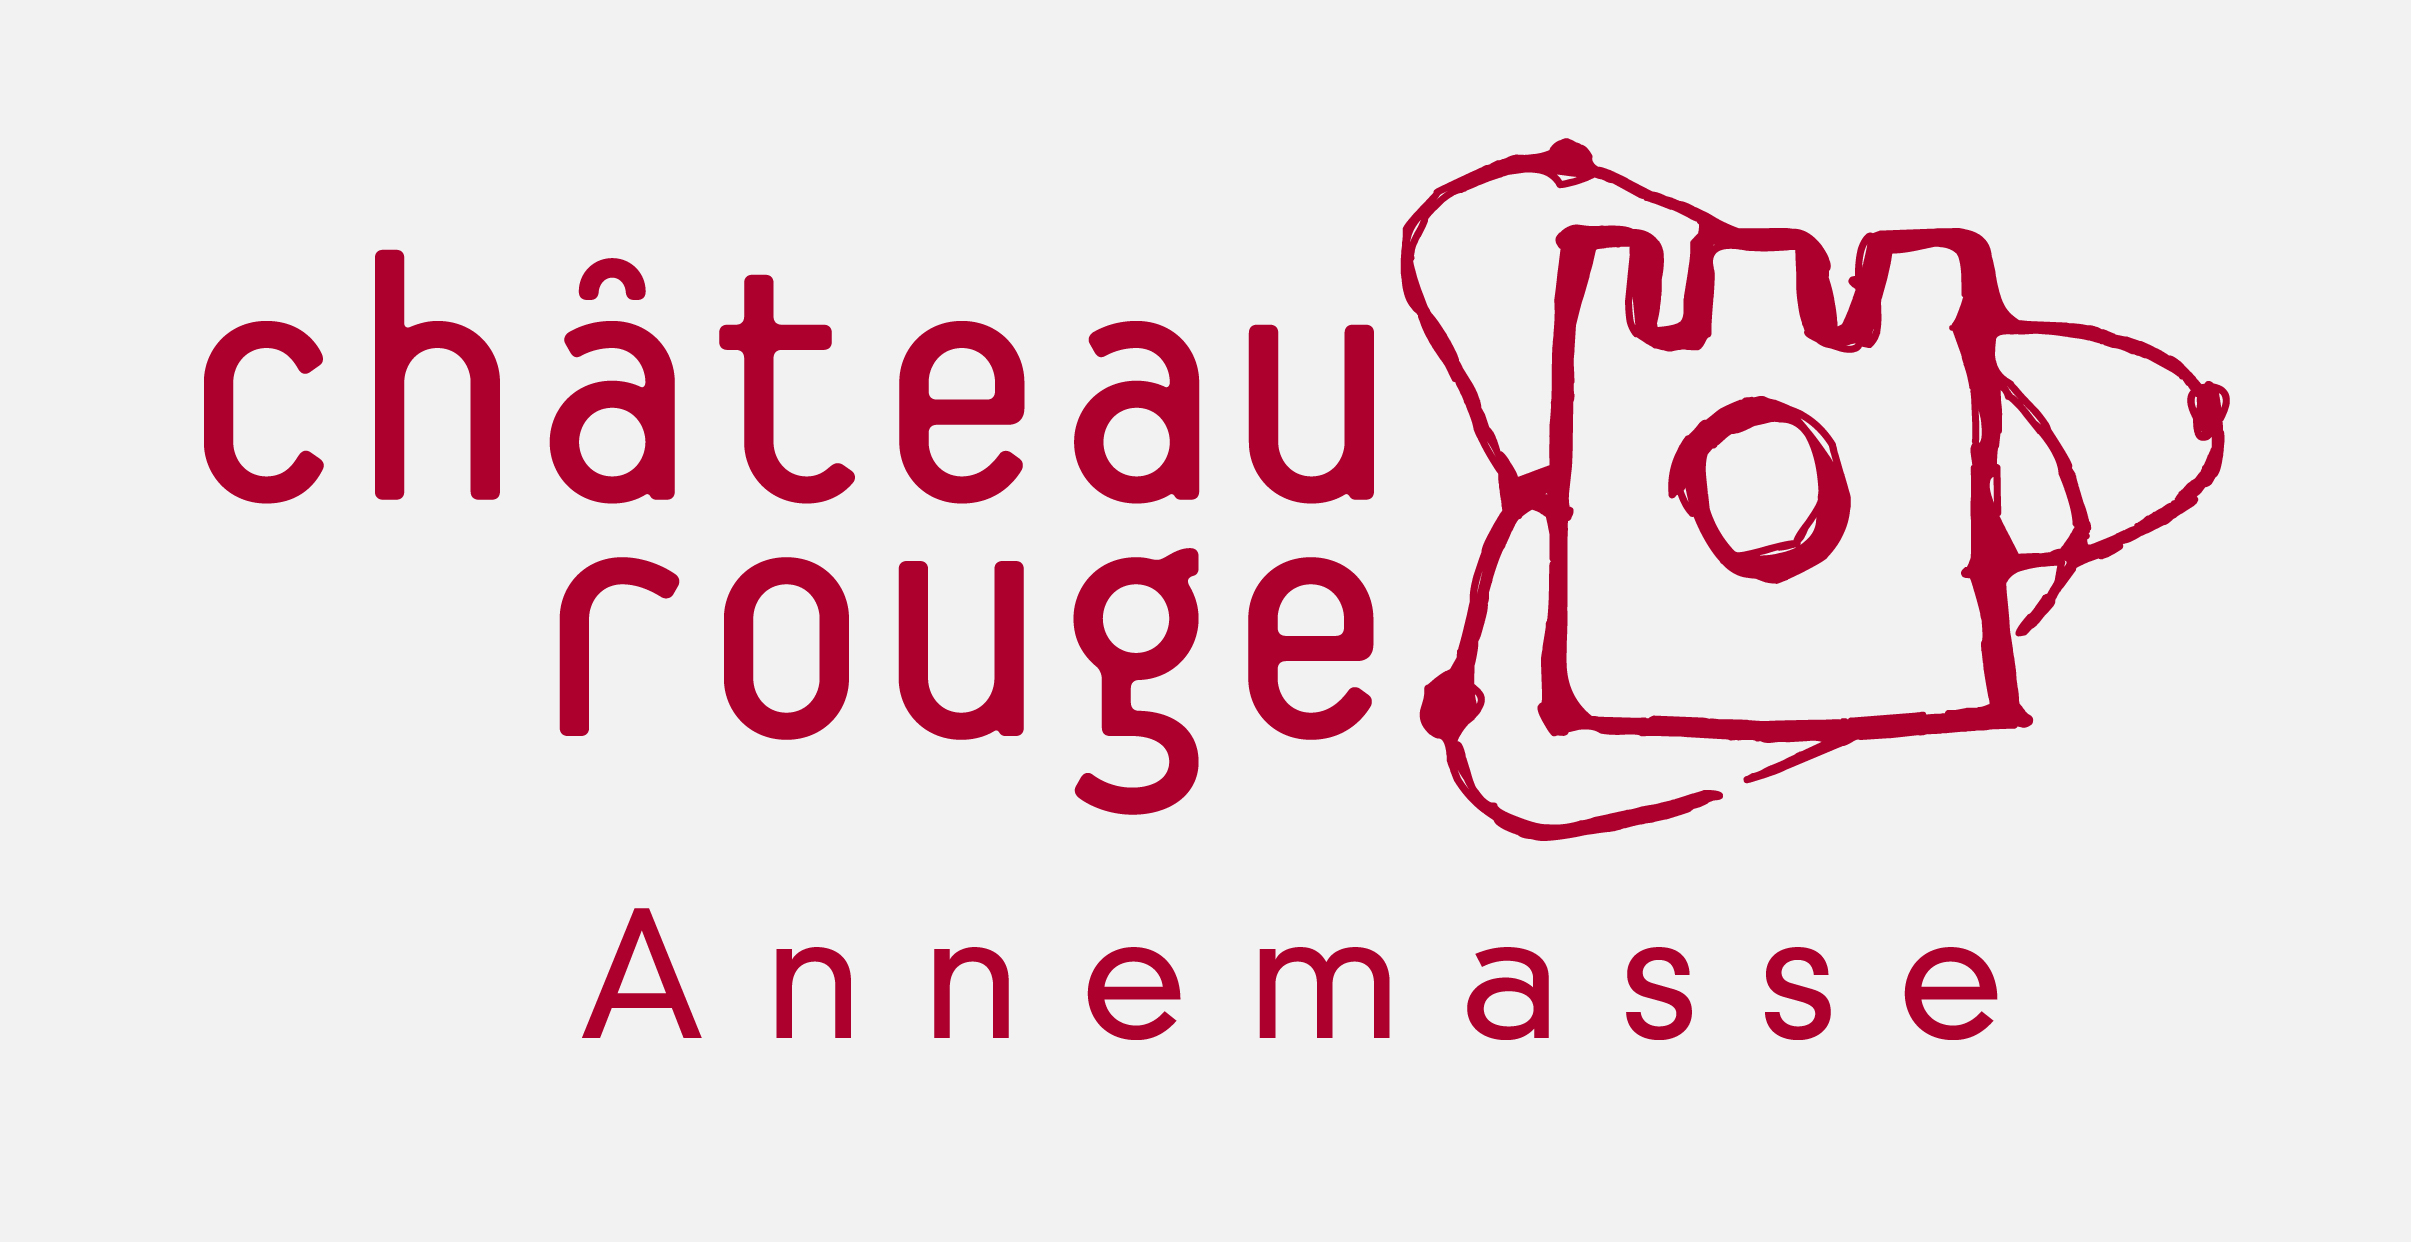 Curating-Chateau-rouge-annemasse